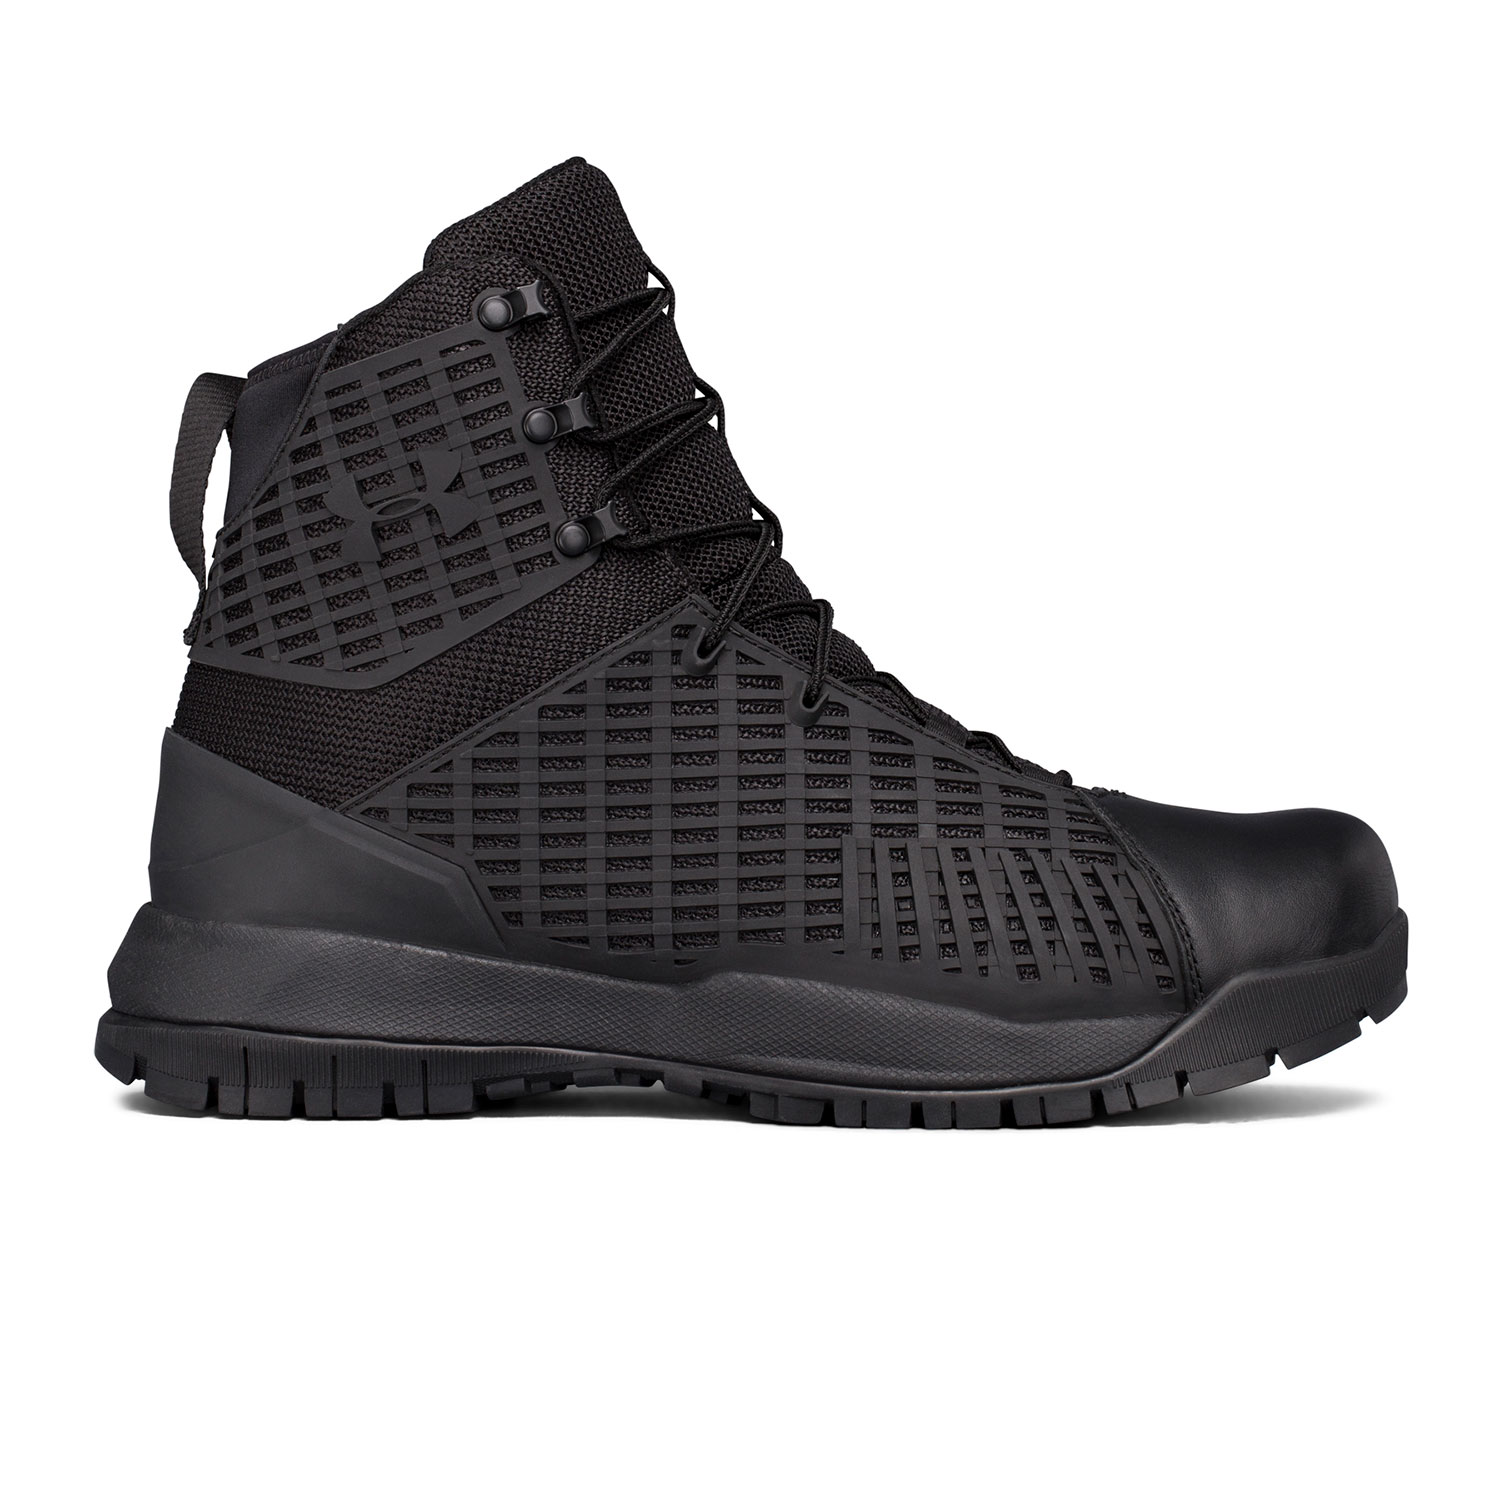 Under Armour Stryker Tactical Boots